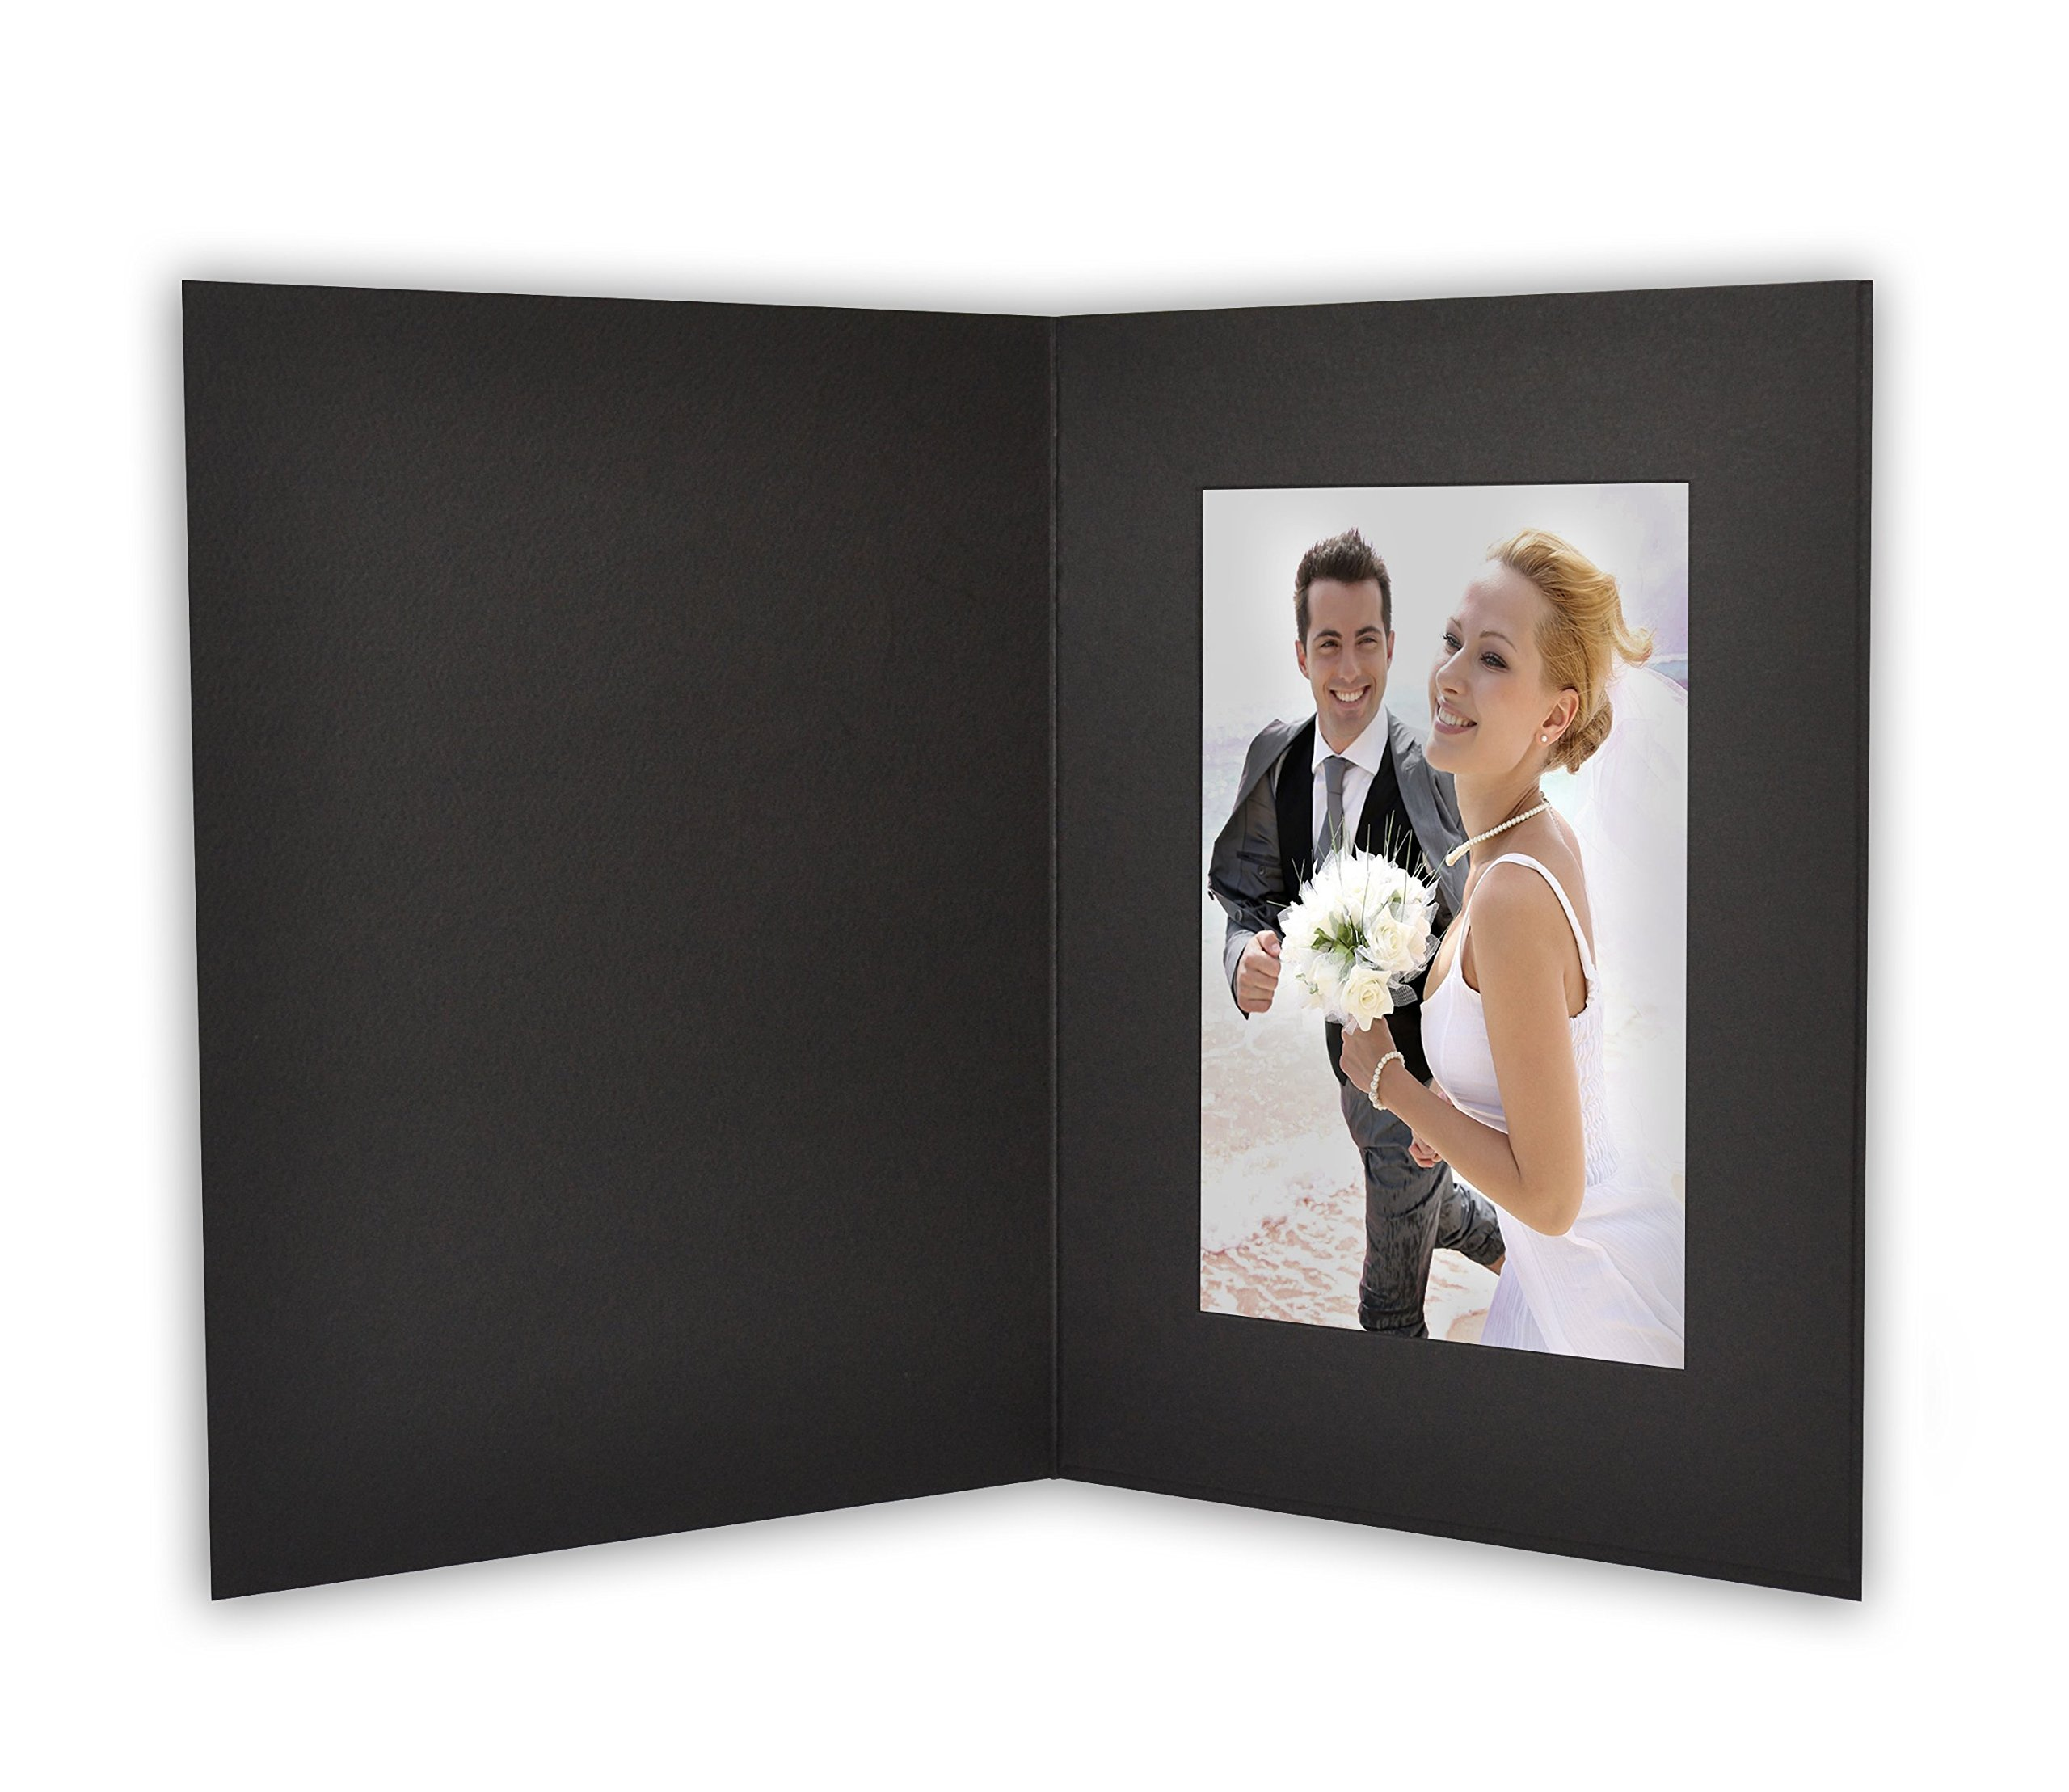 Golden State Art, ANGEL PRINT Cardboard Photo Folder For a 4x6 Photo (Pack of 50) GS007 Black Color